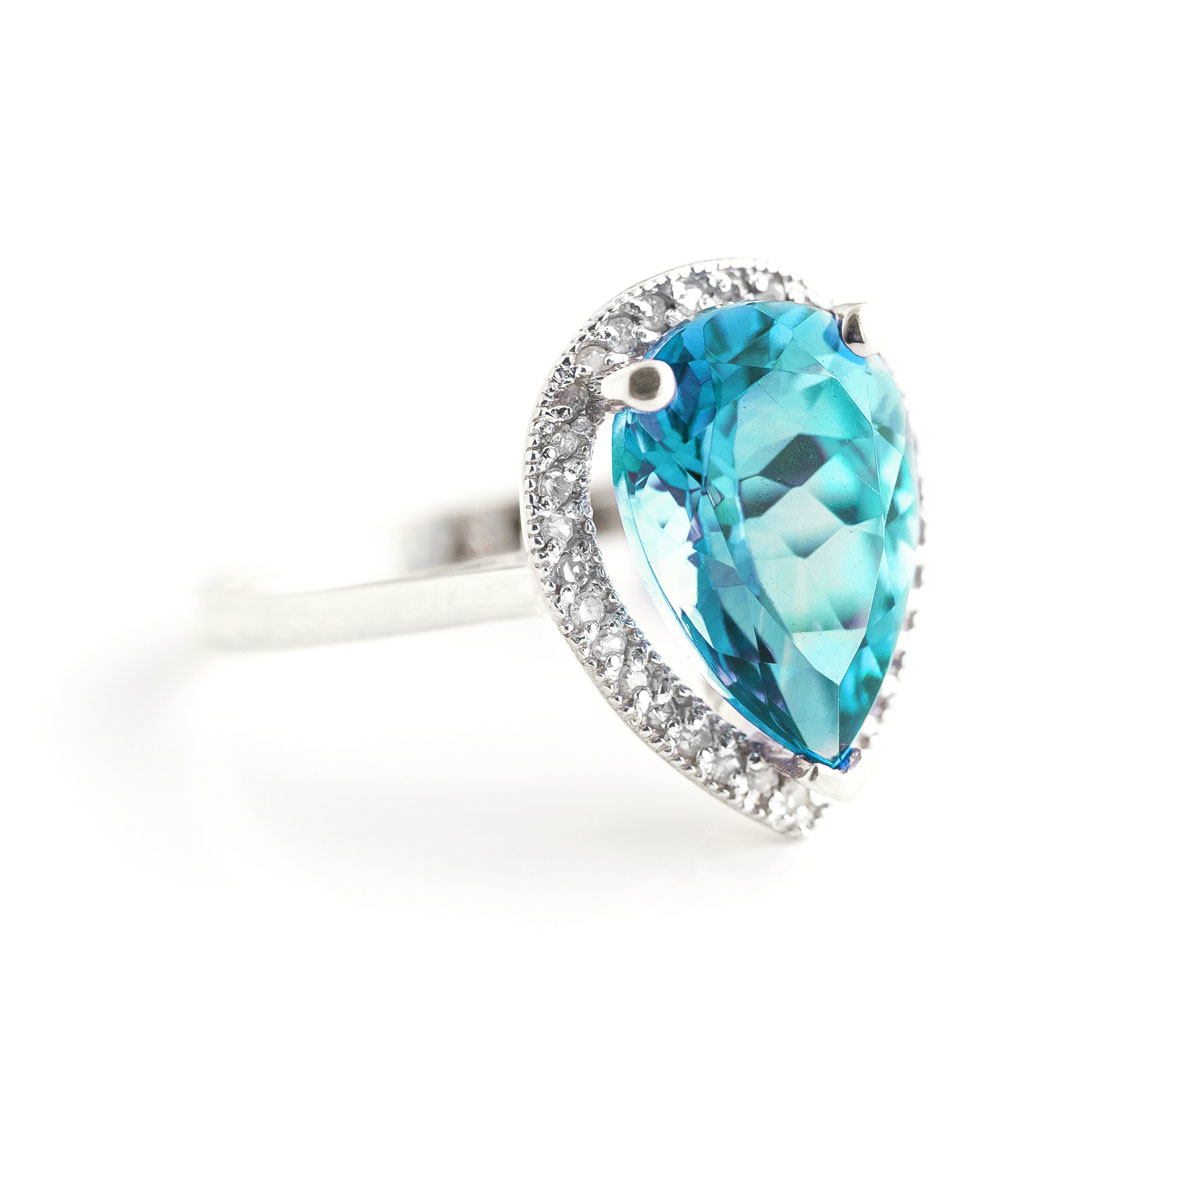 Blue Topaz Halo Ring 4.66 ctw in 18ct White Gold